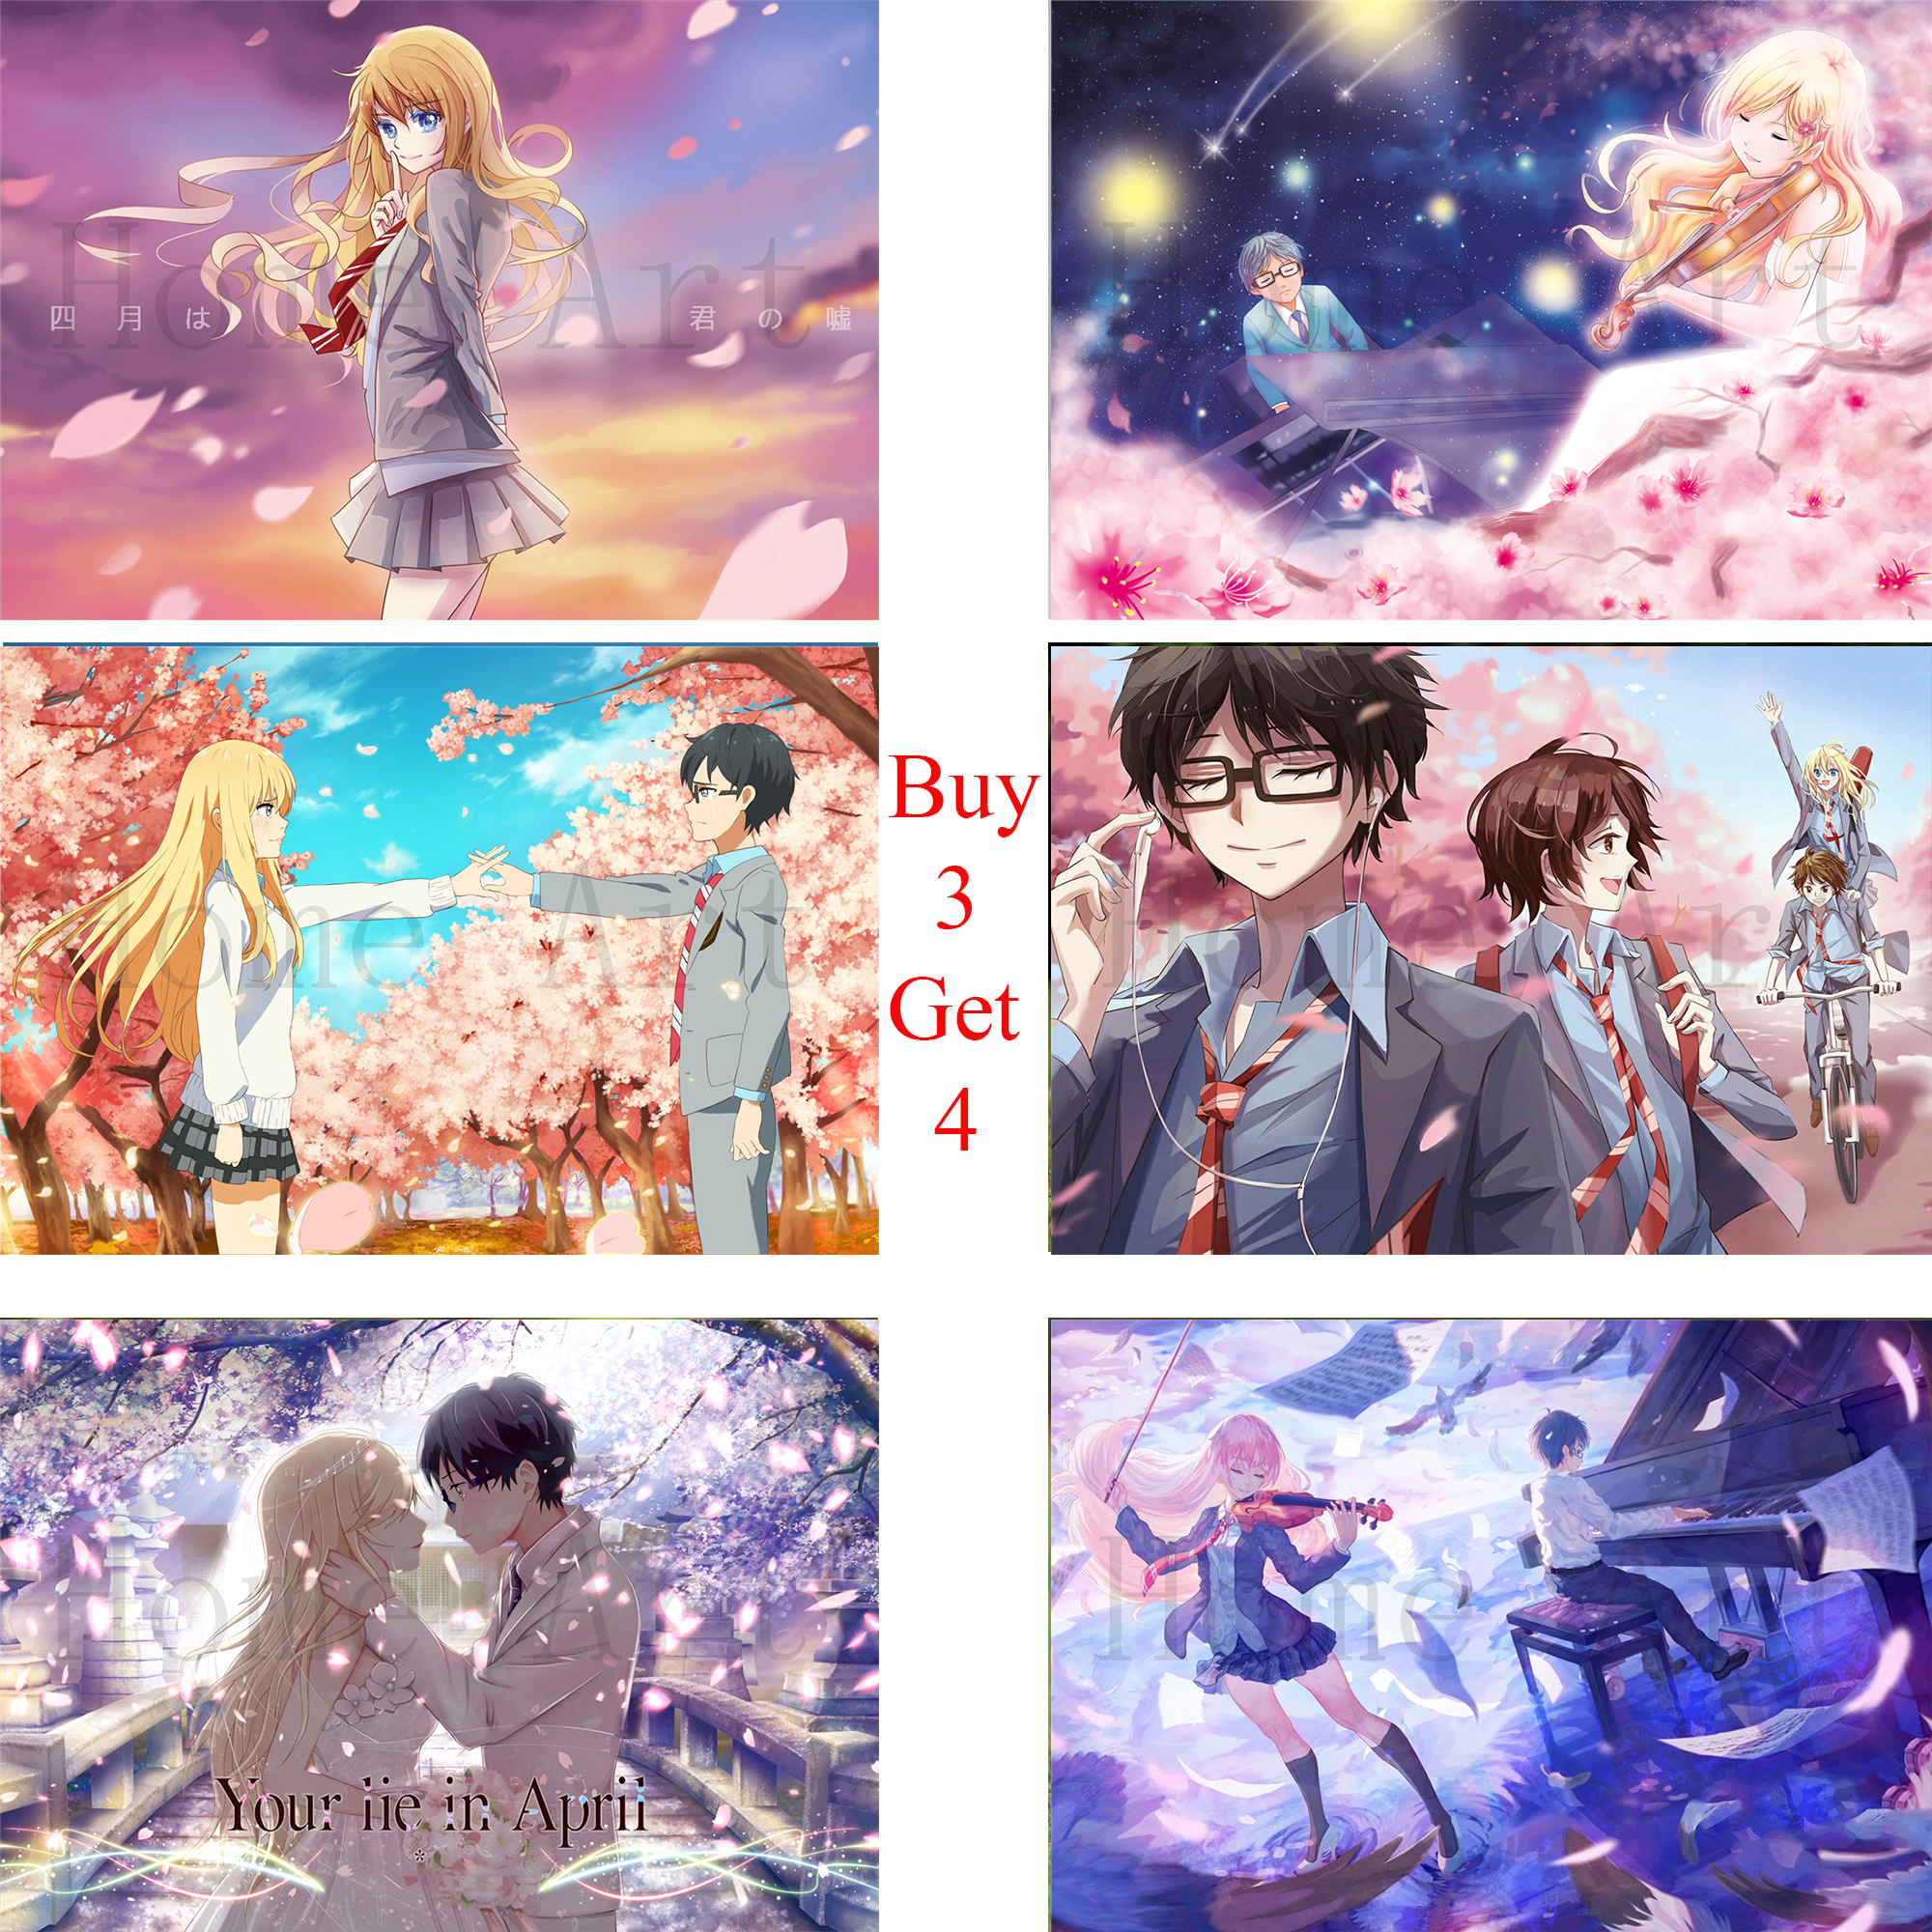 your lie in april poster clear image wall stickers home decoration high quality prints white coated paper home art brand